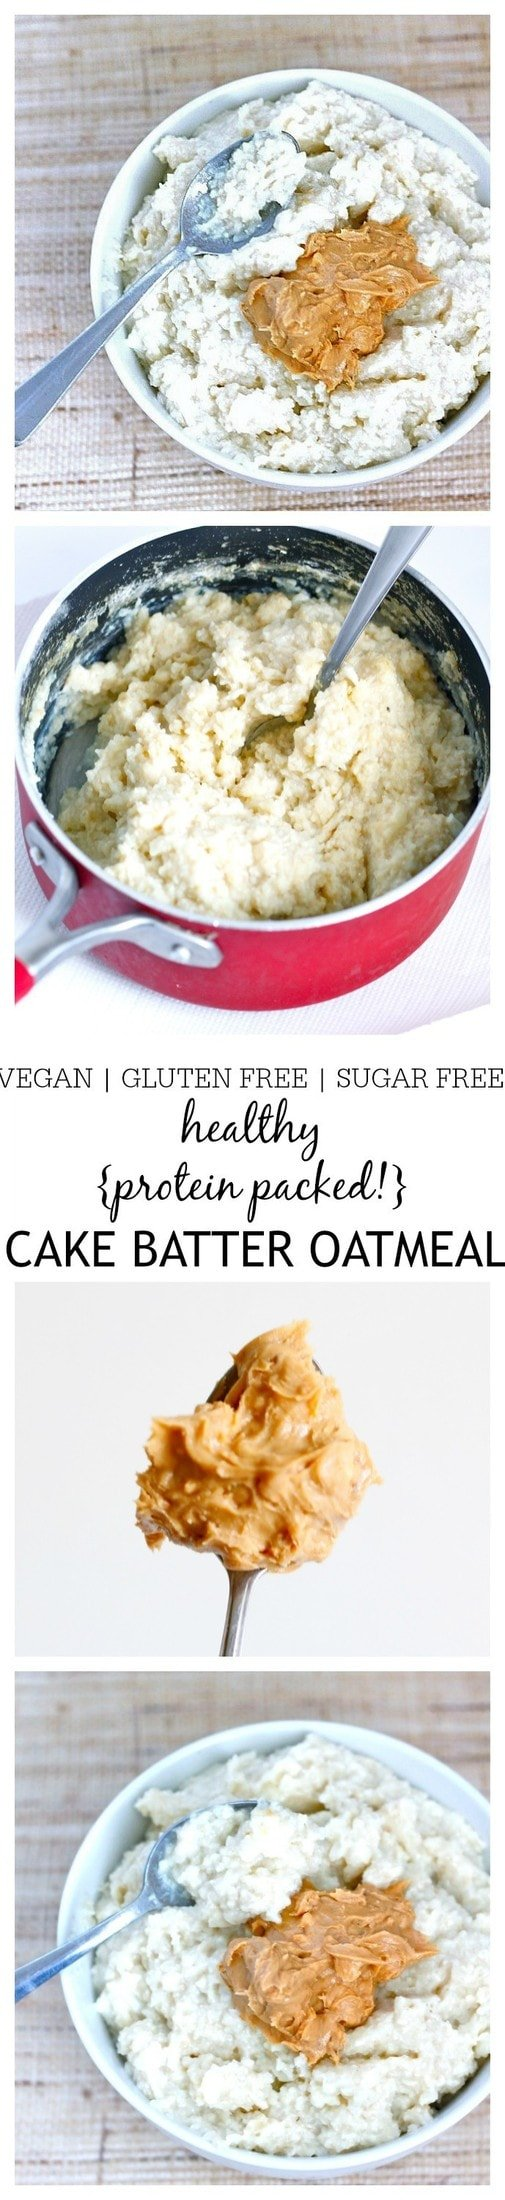 Healthy {Protein Packed!} Cake Batter Oatmeal- he taste and texture of a classic cake batter but in a healthy breakfast oatmeal form! This Cake Batter Oatmeal is gluten free, dairy free, sugar free and has a vegan option- Perfect to be eaten hot OR cold! @thebigmansworld - thebigmansworld.com